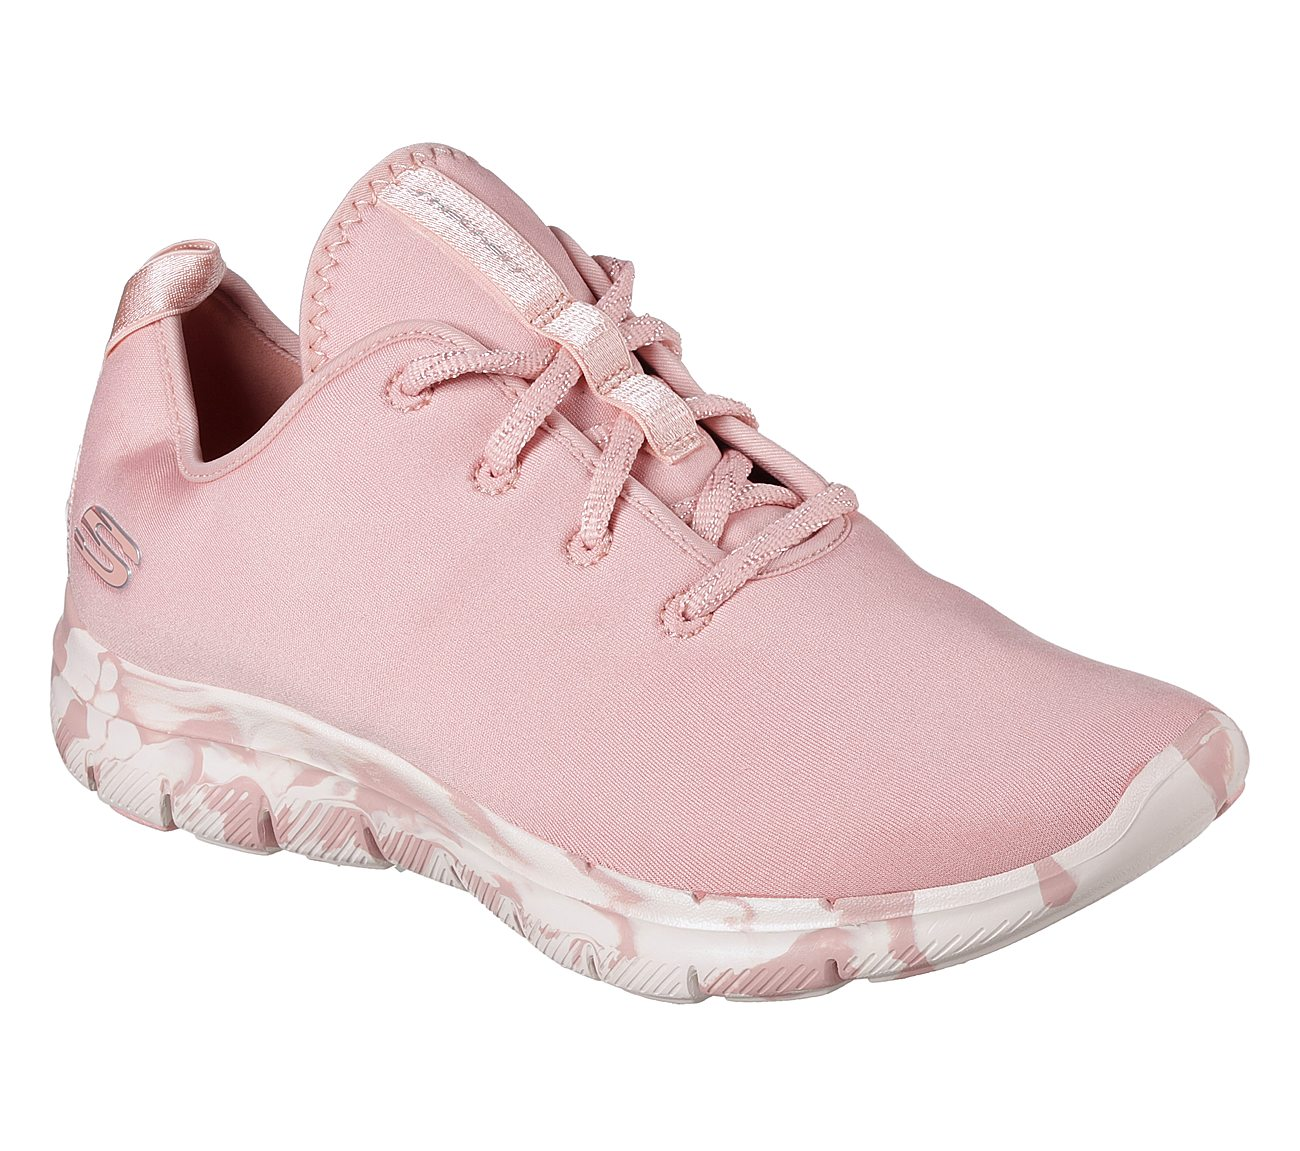 Buy SKECHERS Flex Appeal 2.0 - Last